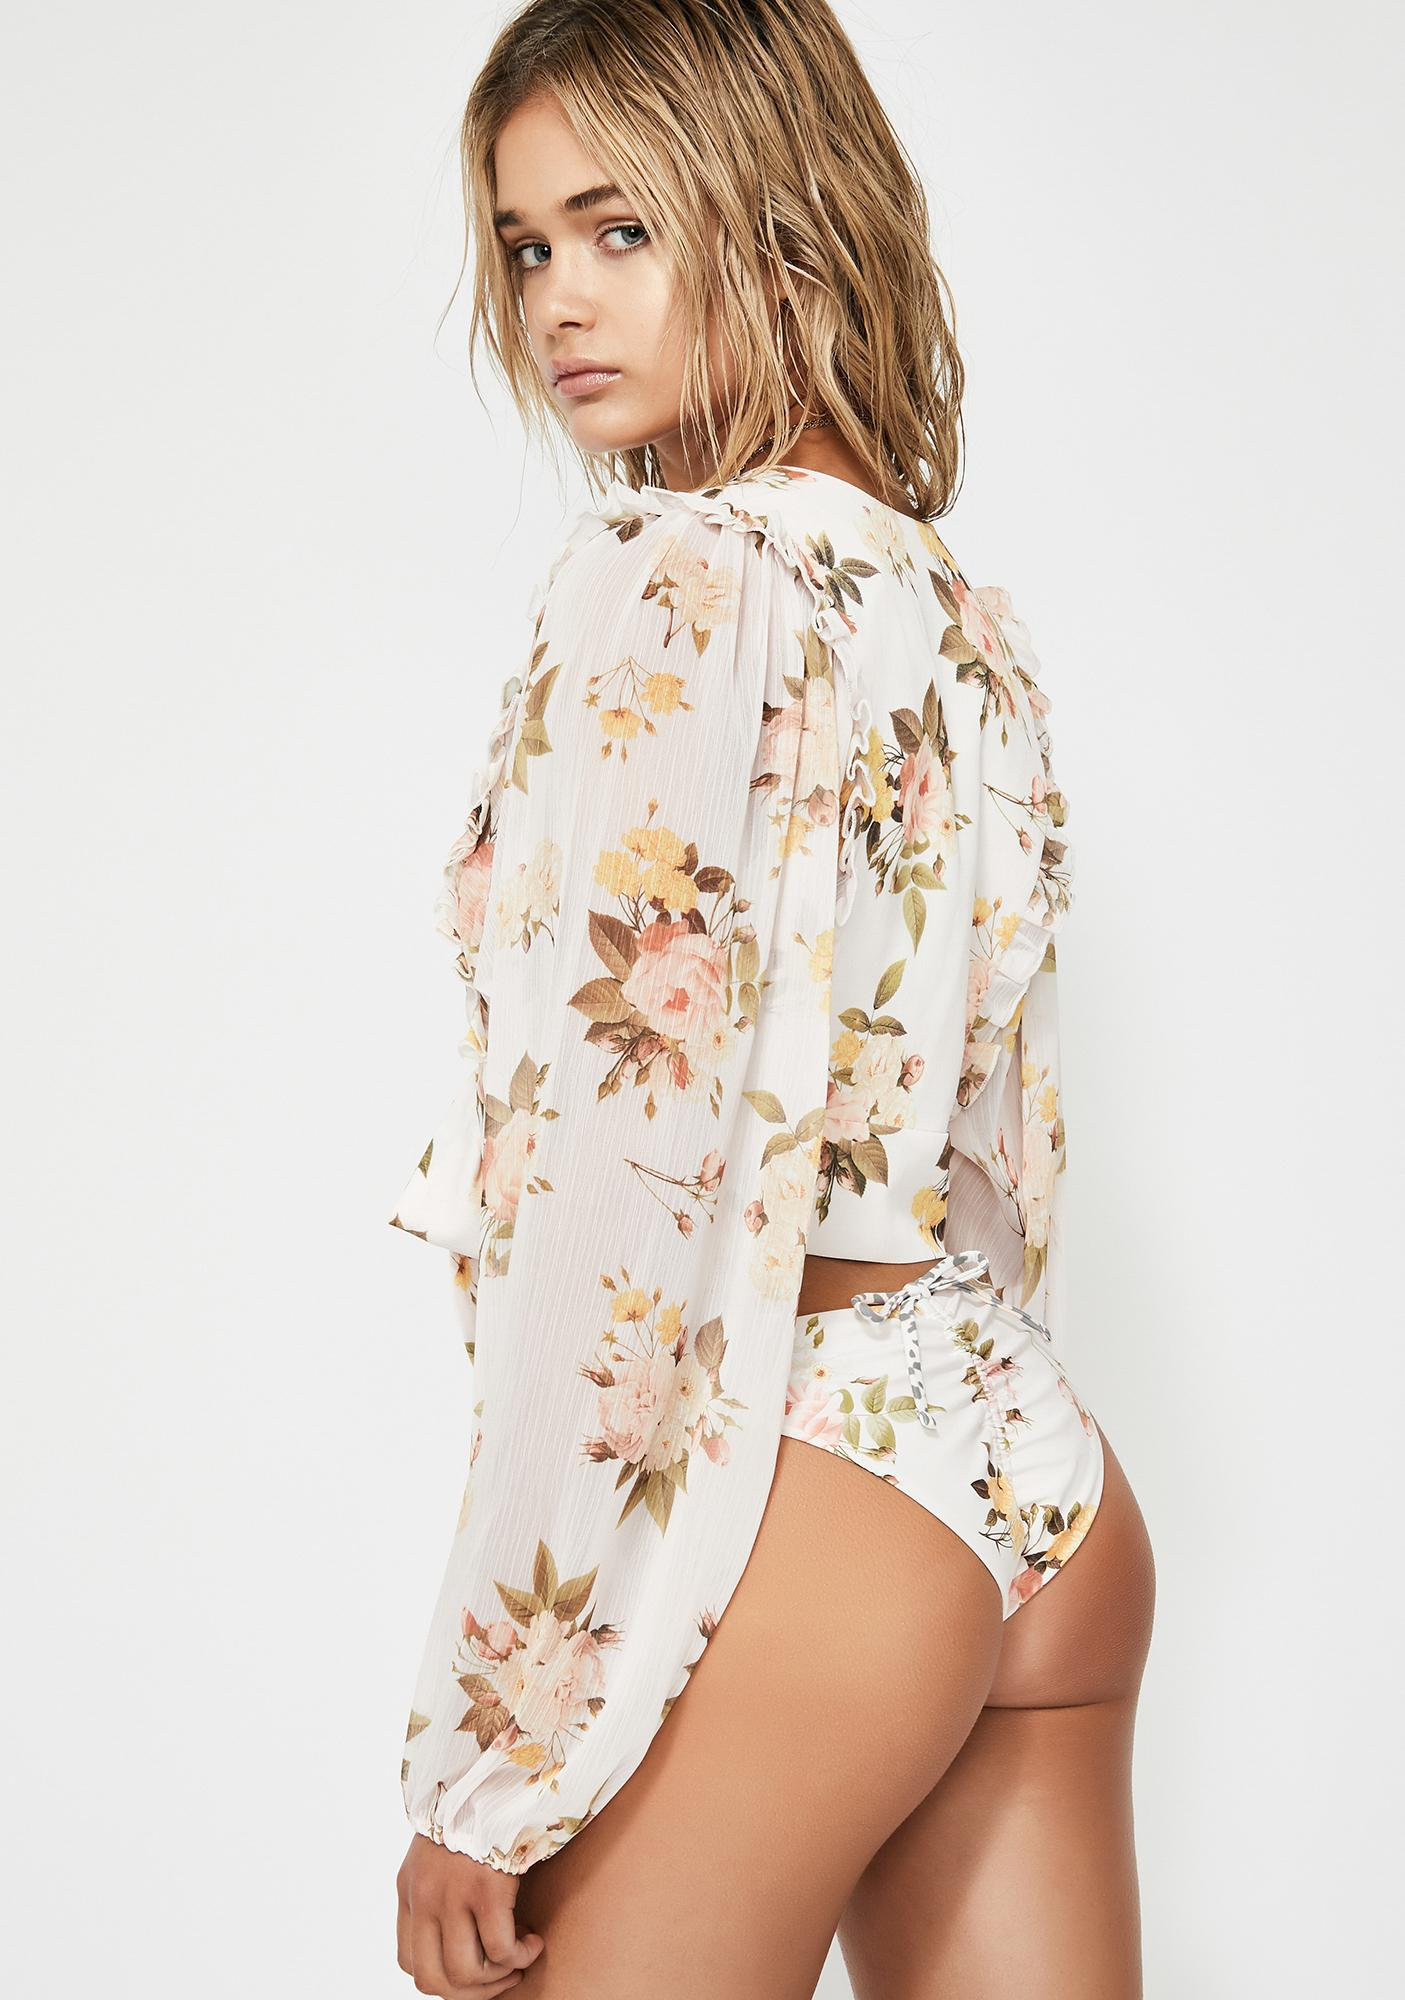 Power 2 the Flower Maya Crop Top